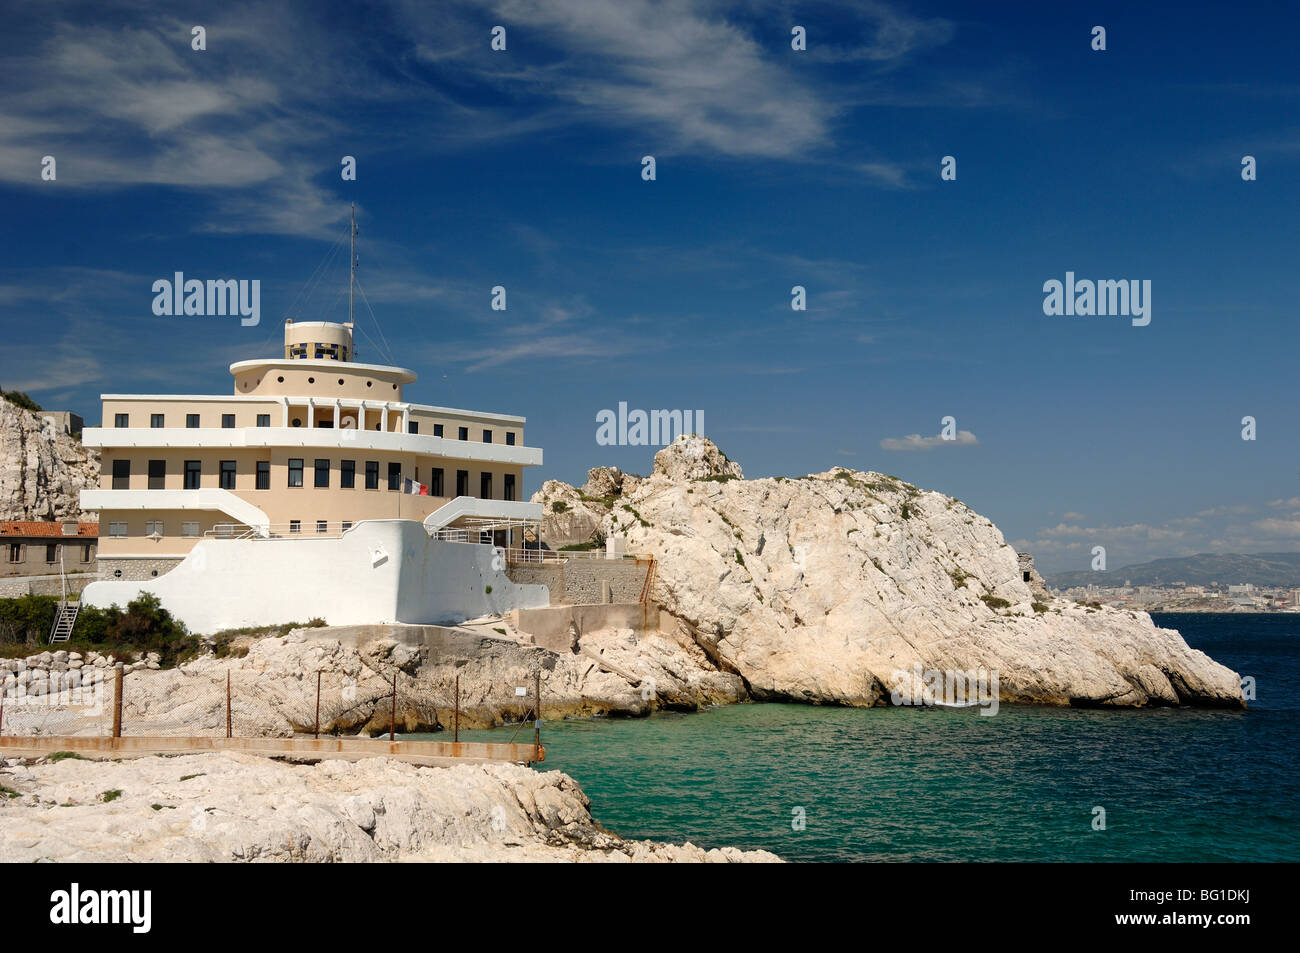 Boat-Shaped Pilotage Station Building in Shape of Ship or Boat, Île Ratonneau Island, Frioul, Marseille Marseilles, - Stock Image